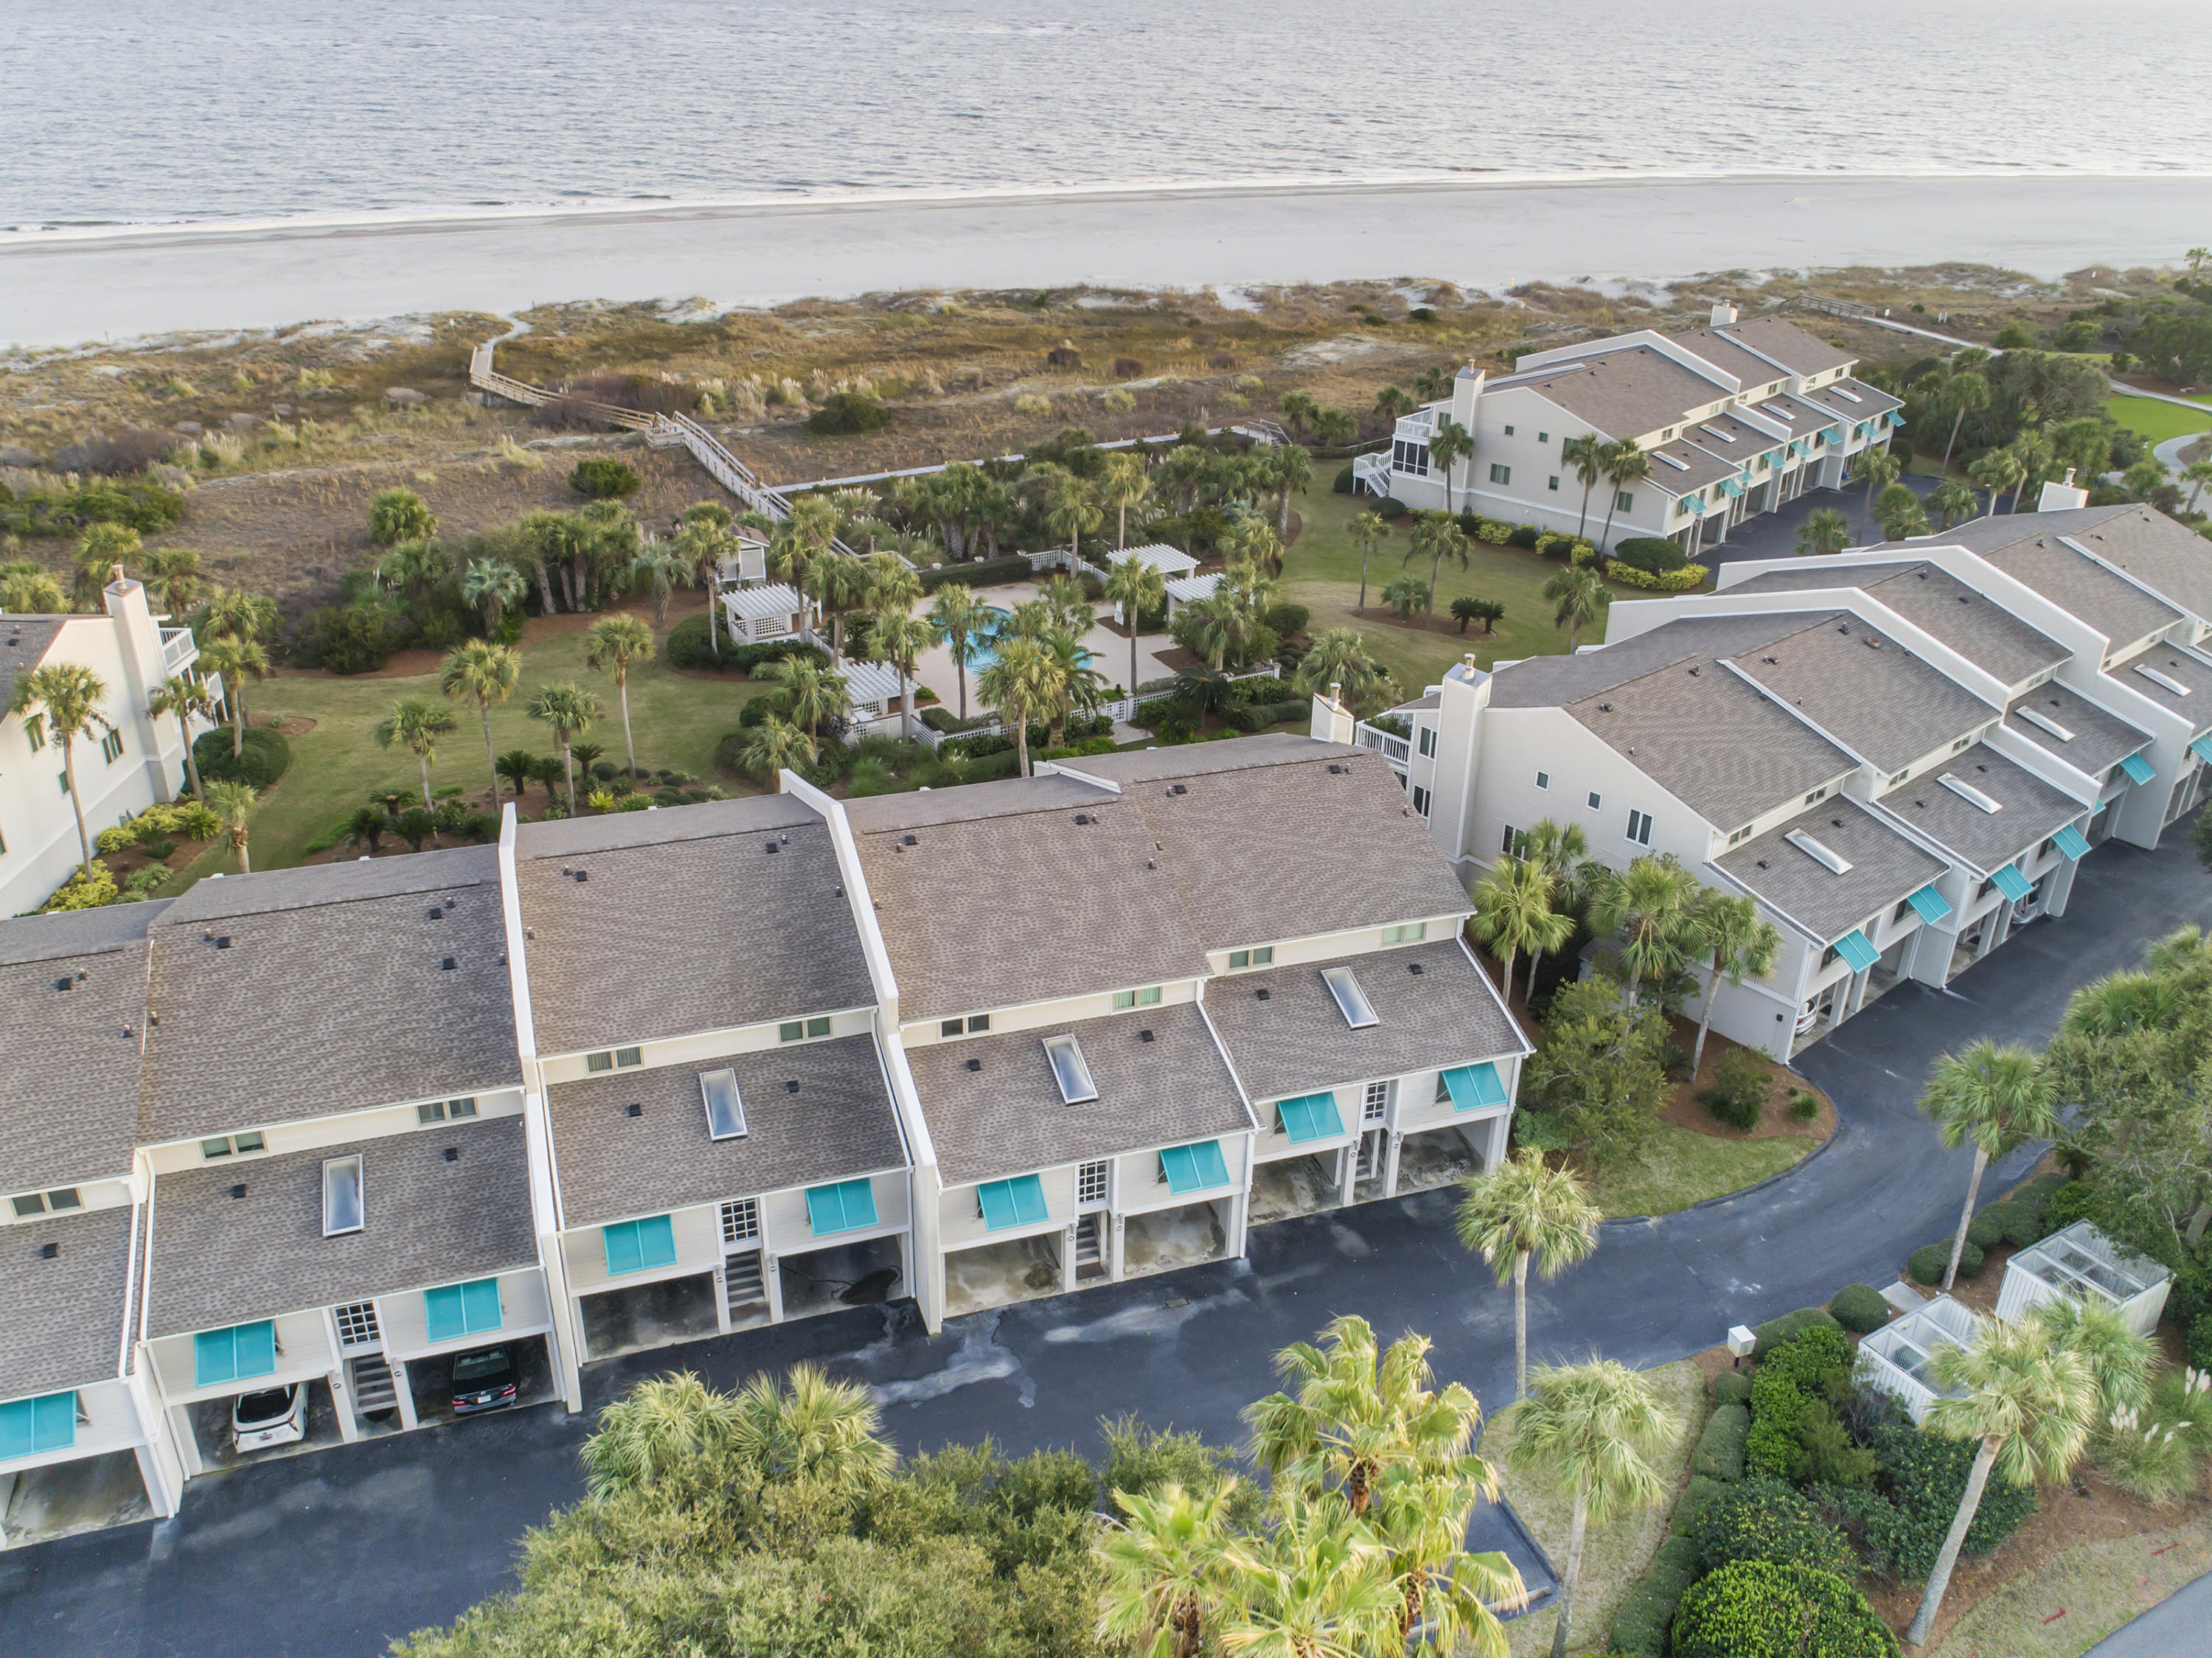 Beach Club Villas Homes For Sale - 51 Beach Club Villas, Isle of Palms, SC - 21